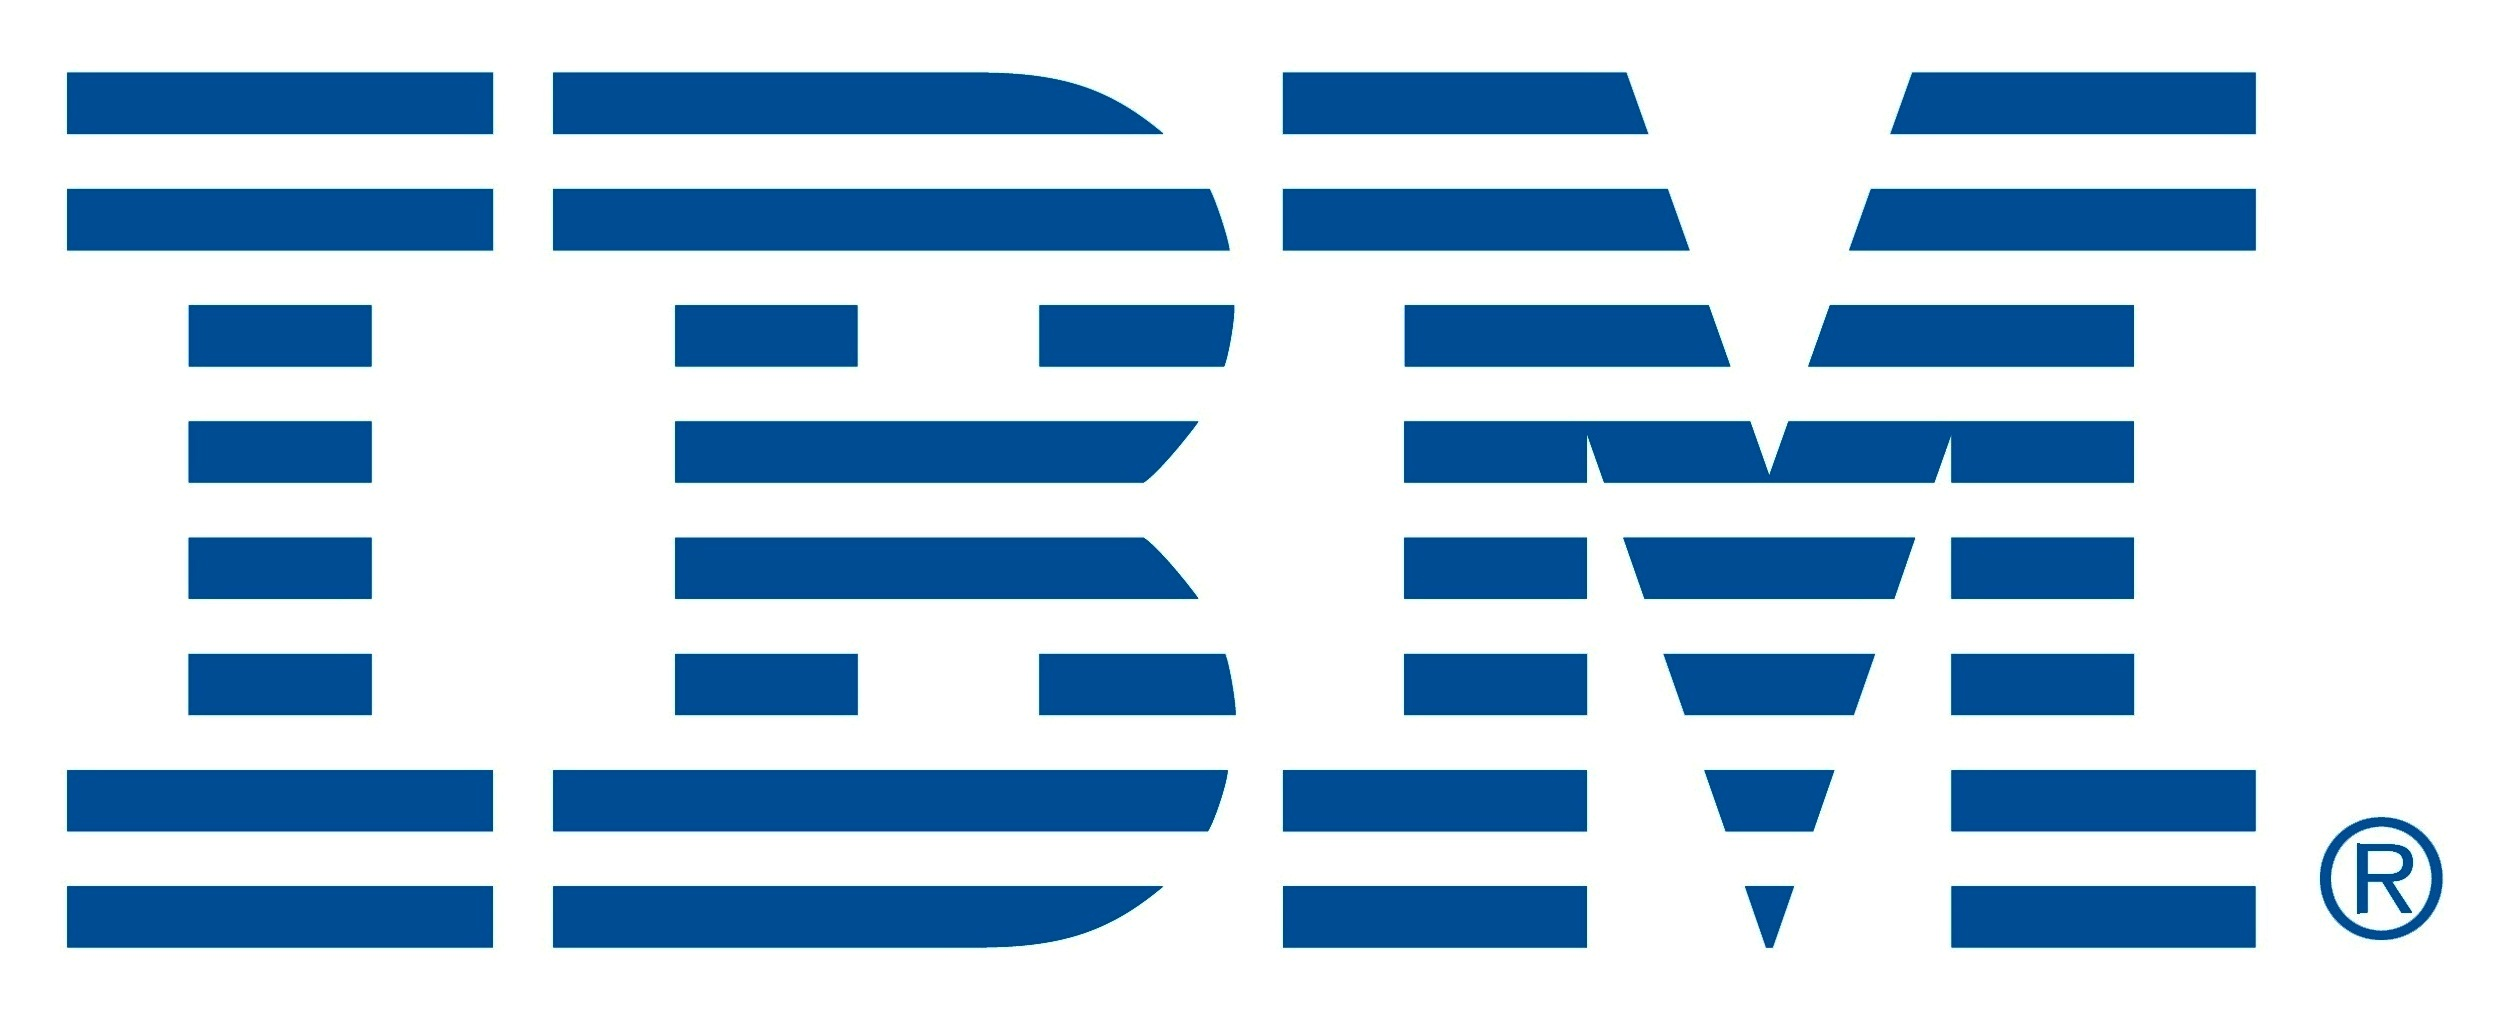 Image result for IBM hd logo